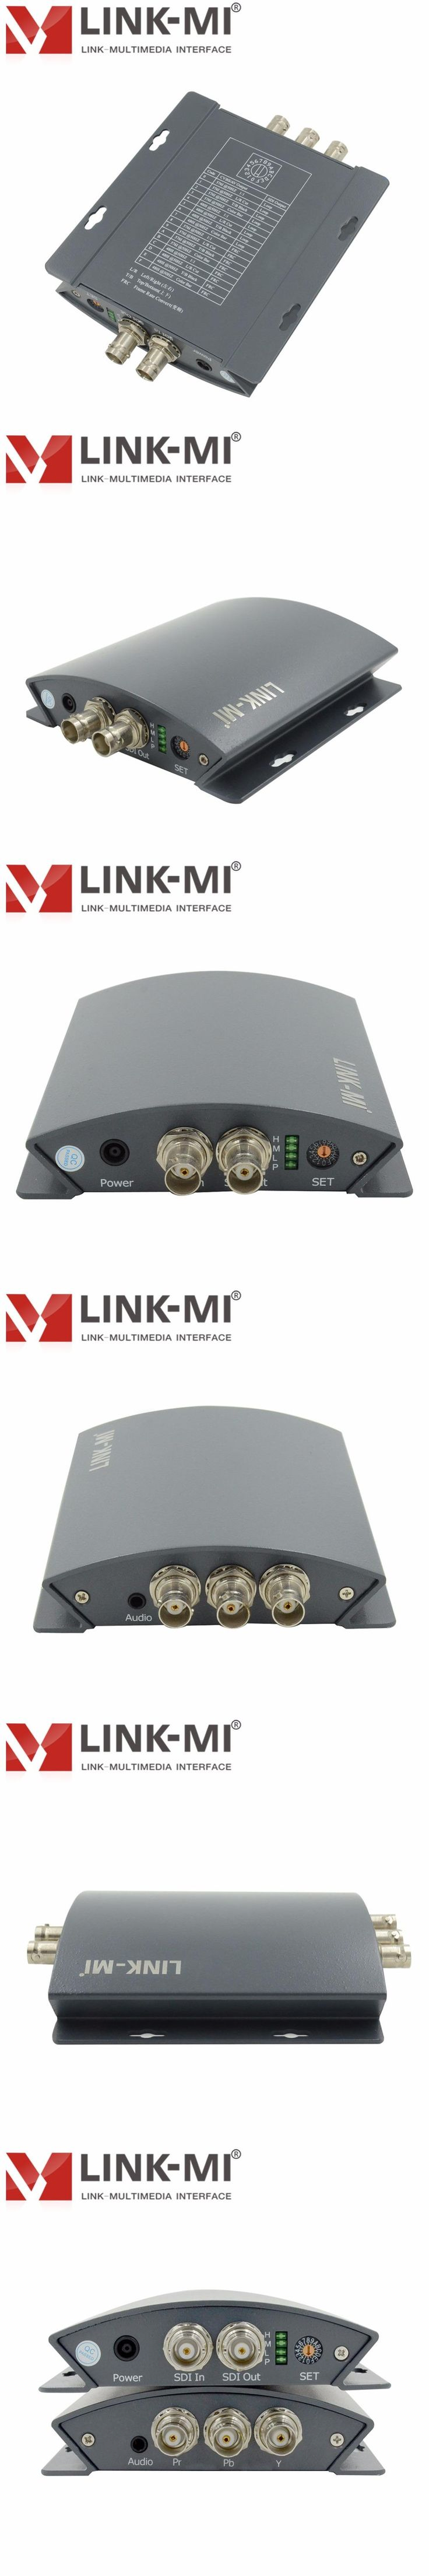 LINK-MI LM-PSY01 Professional SD/HD/3G SDI to YPbPr Converter With DIP Switch BNC Connector